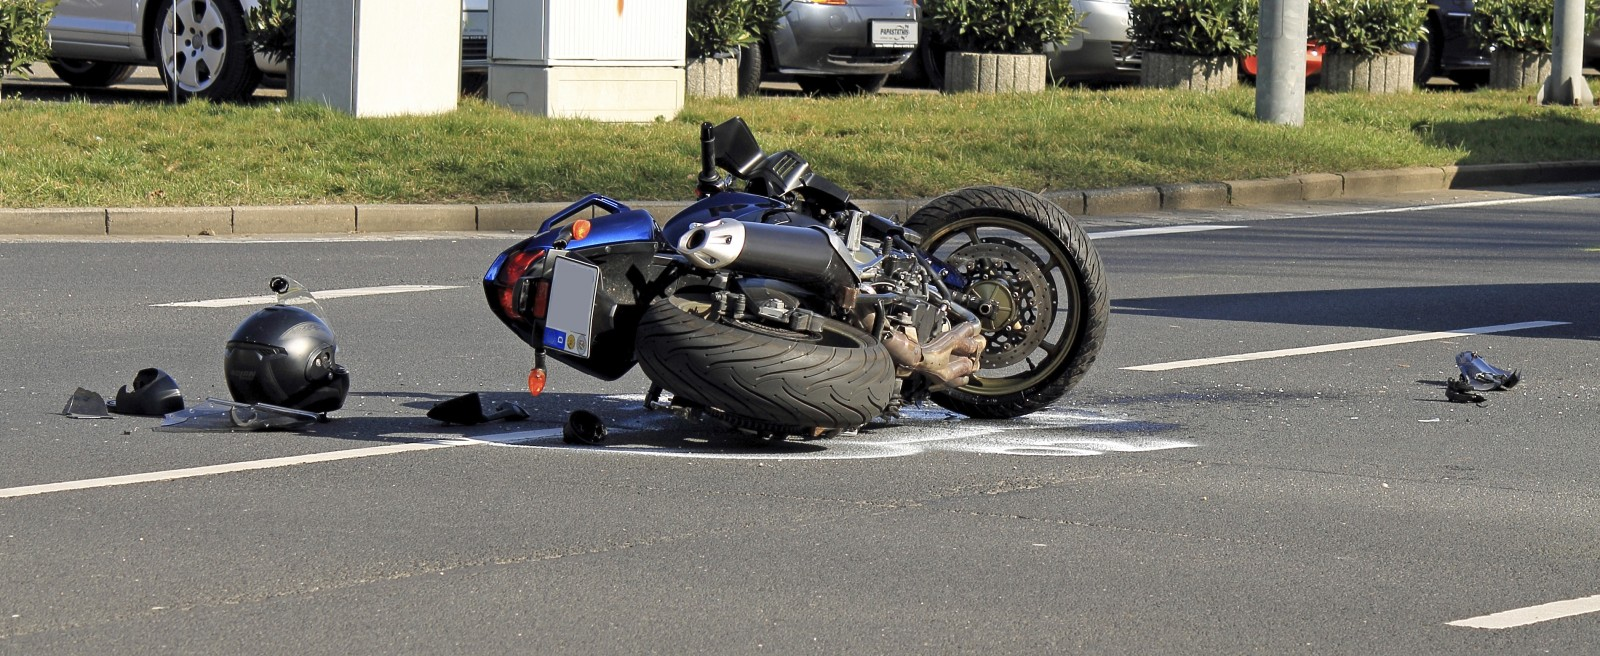 motorcycle accident lawyer in long beach